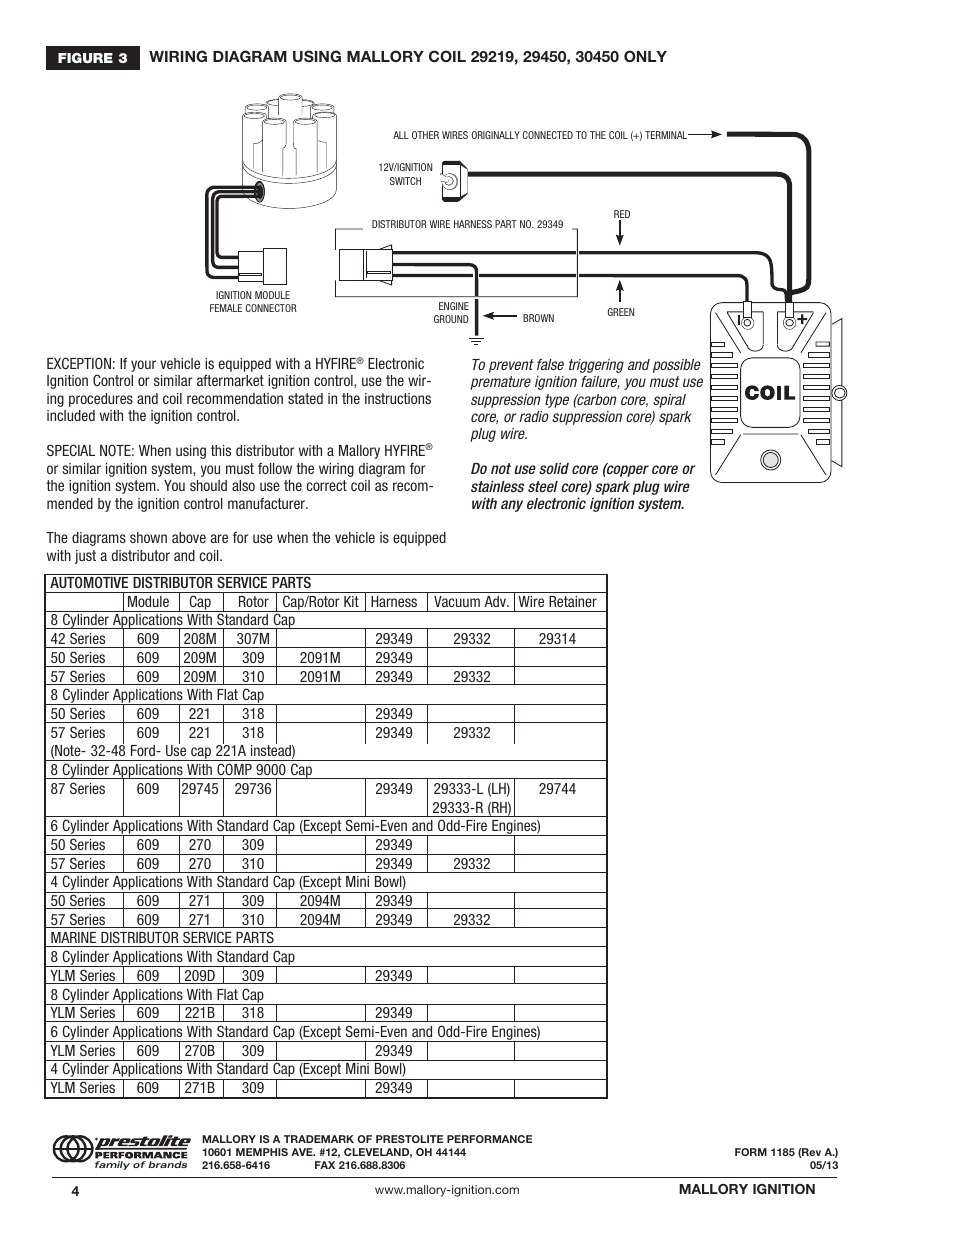 mallory ignition mallory magnetic breakerless distributor 609 page4?resize\\\=665%2C861 unilite wiring diagram gandul 45 77 79 119 motec m4 wiring diagram at gsmx.co